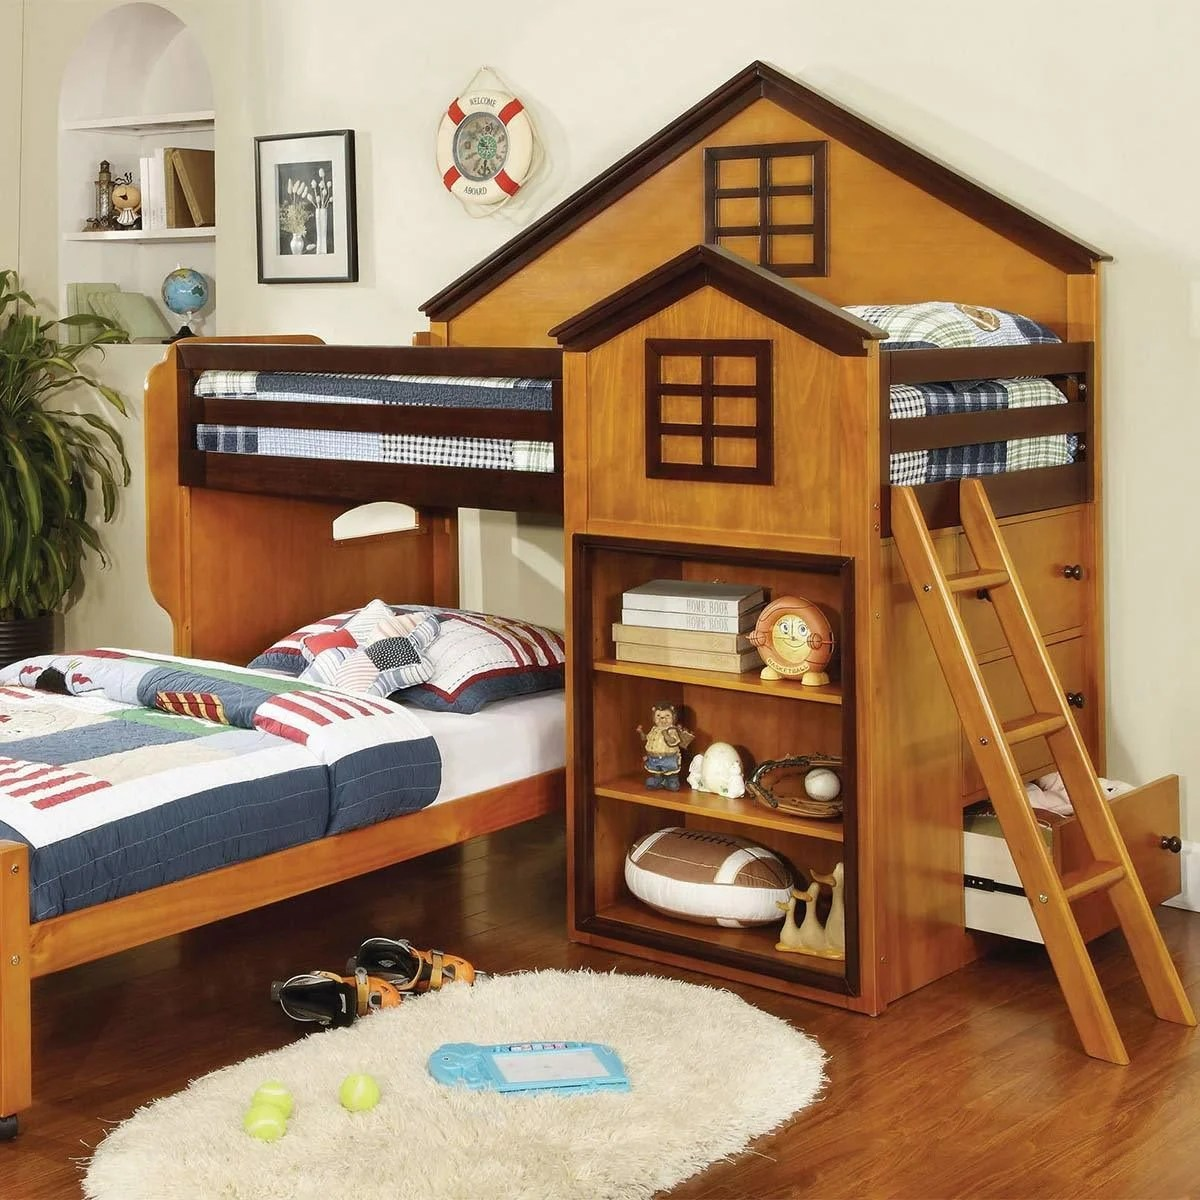 Loft Bunk Beds Australia 14 Of The Coolest Beds You Can Buy Today The Family Handyman